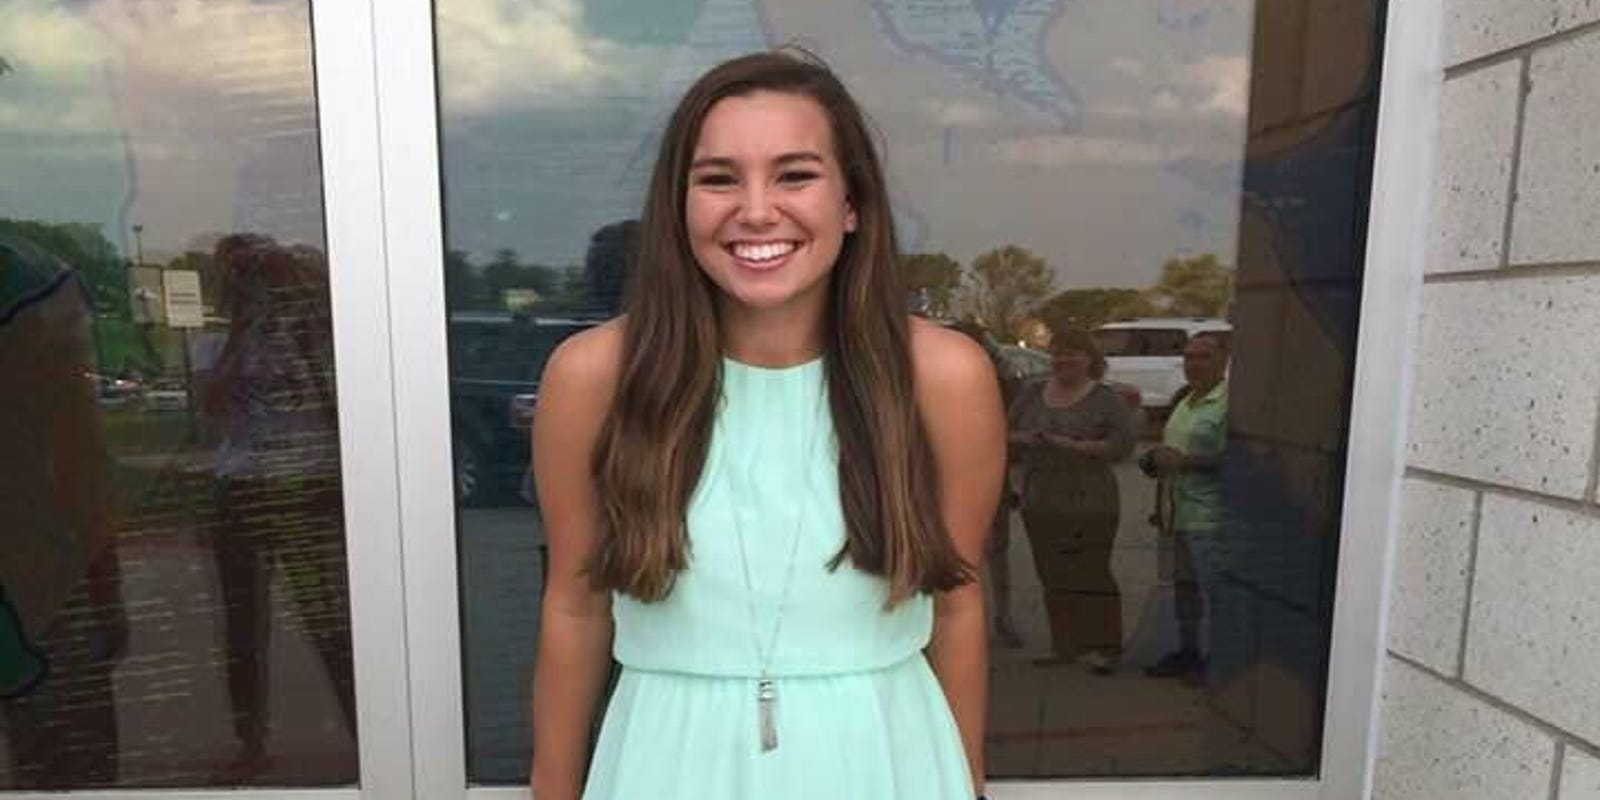 How a video helped solve mystery of Mollie Tibbetts' disappearance, authorities say